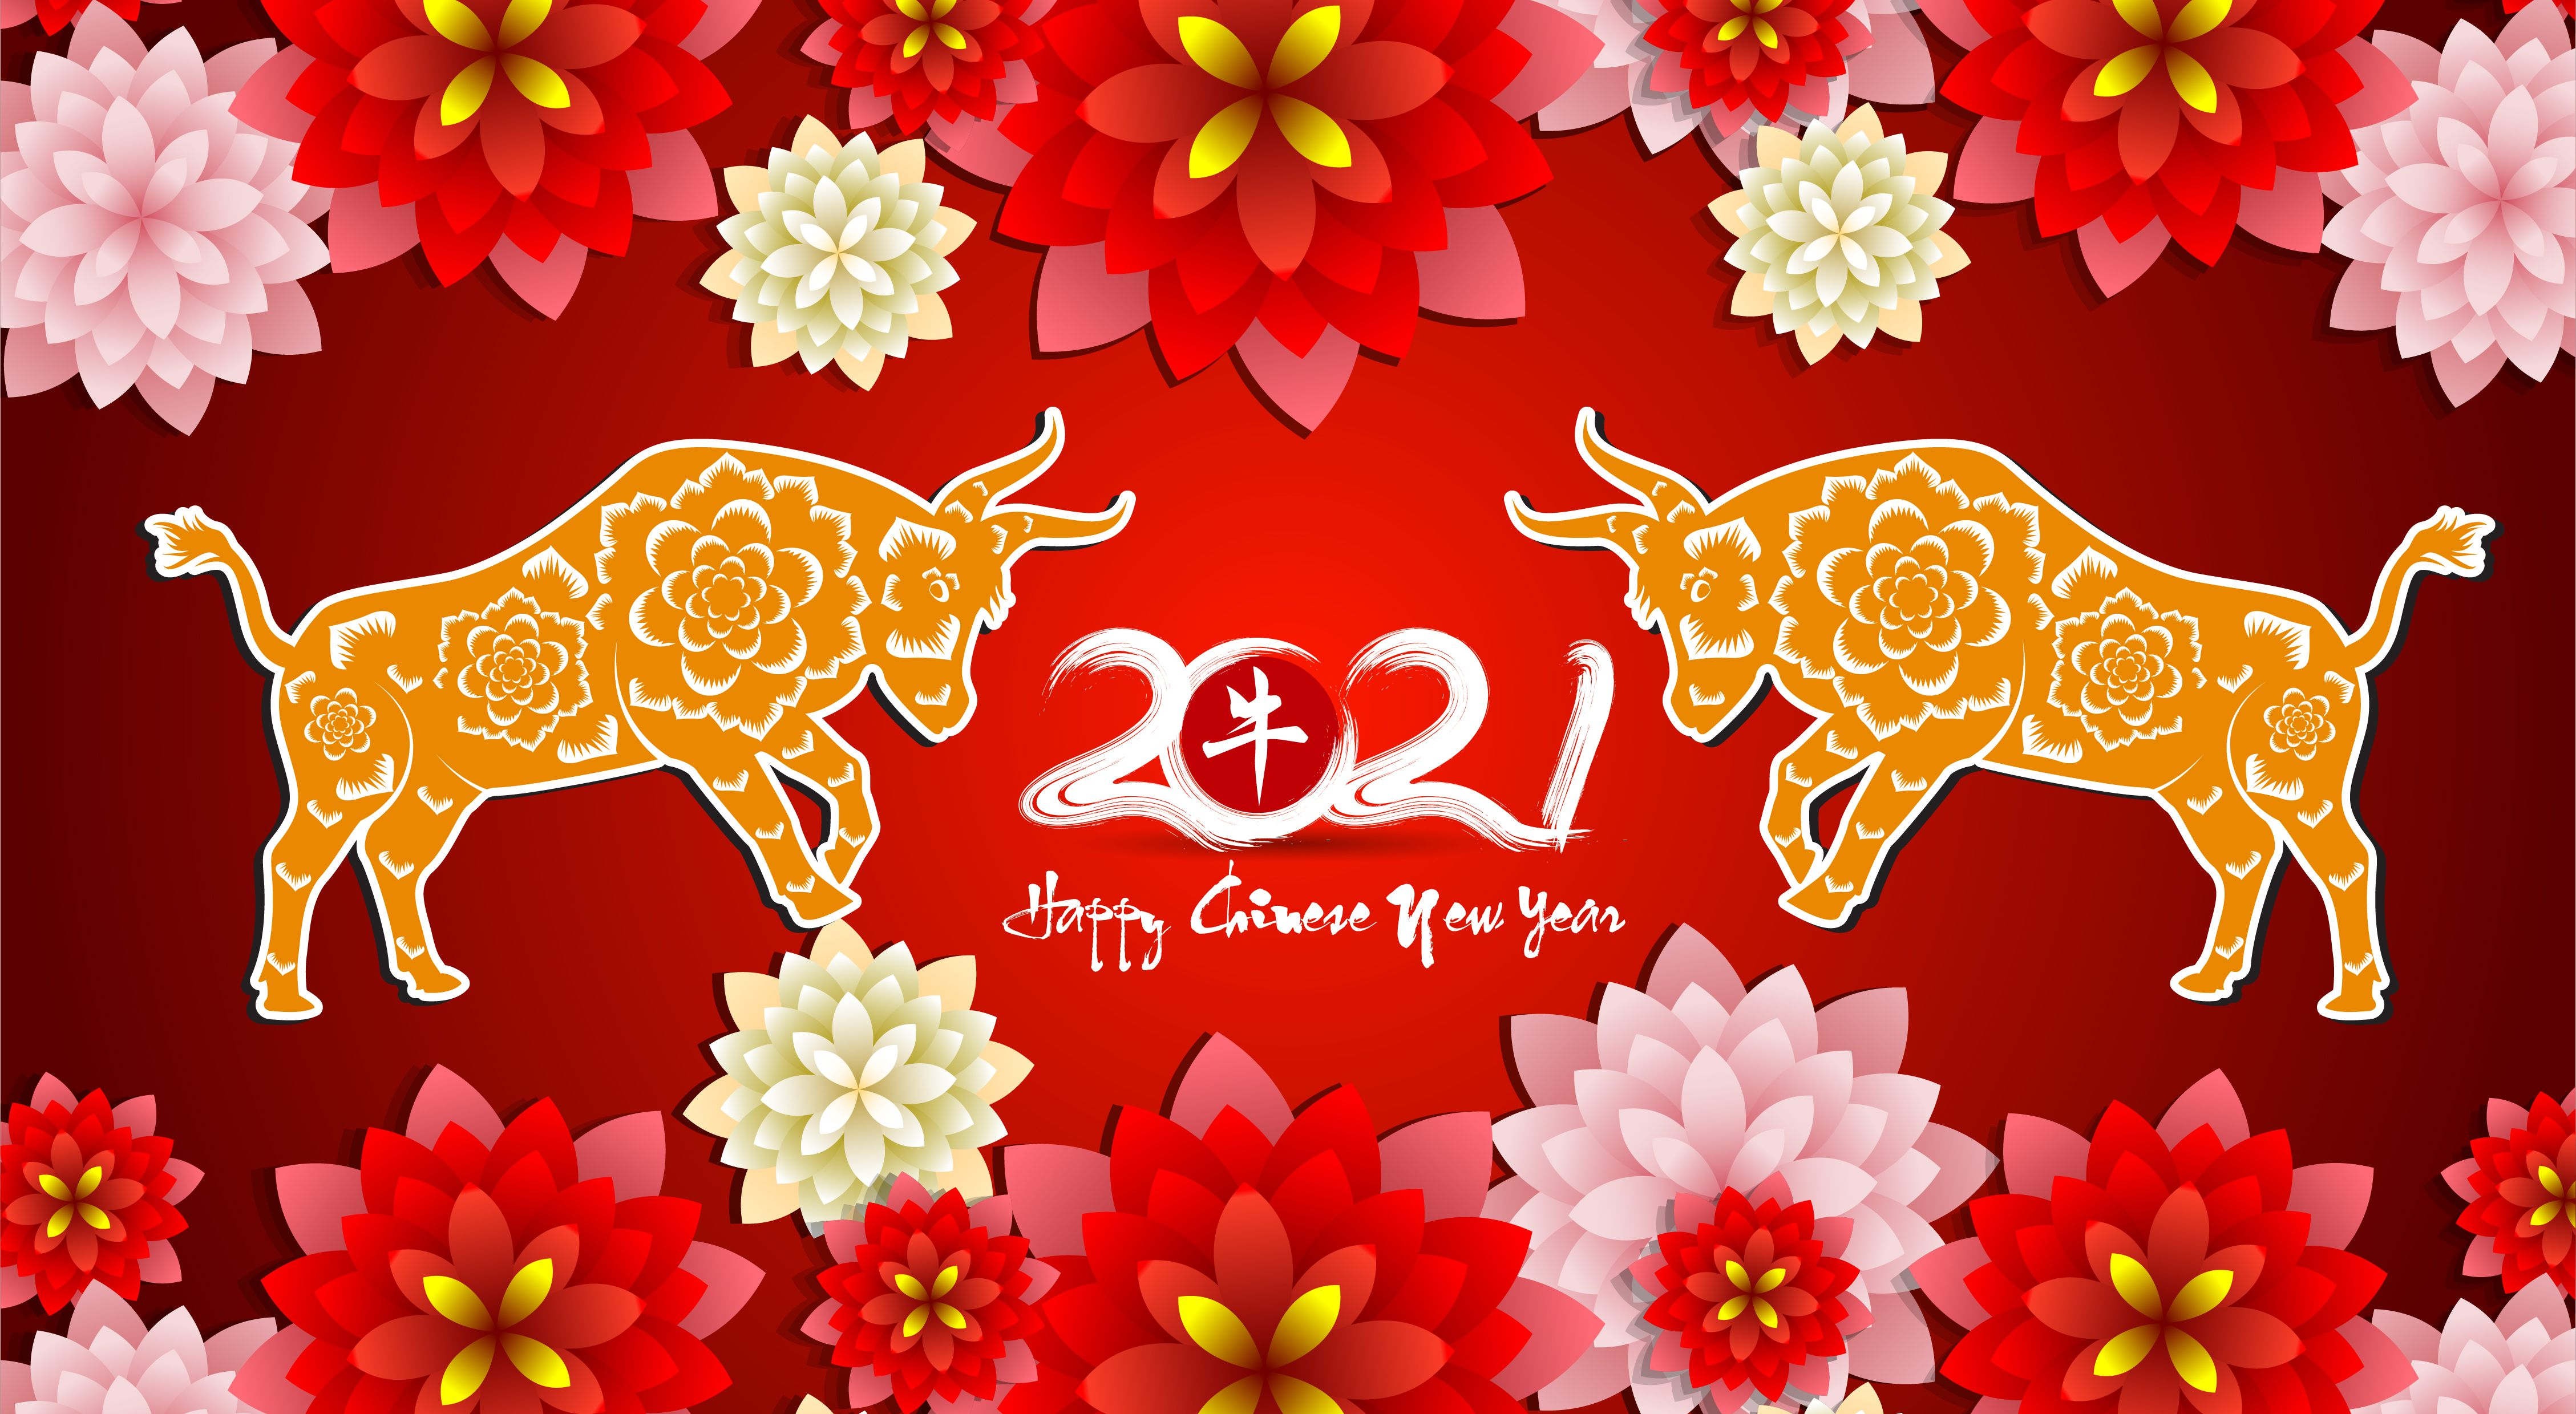 2021 Chinese New Year Wallpapers Wallpaper Cave